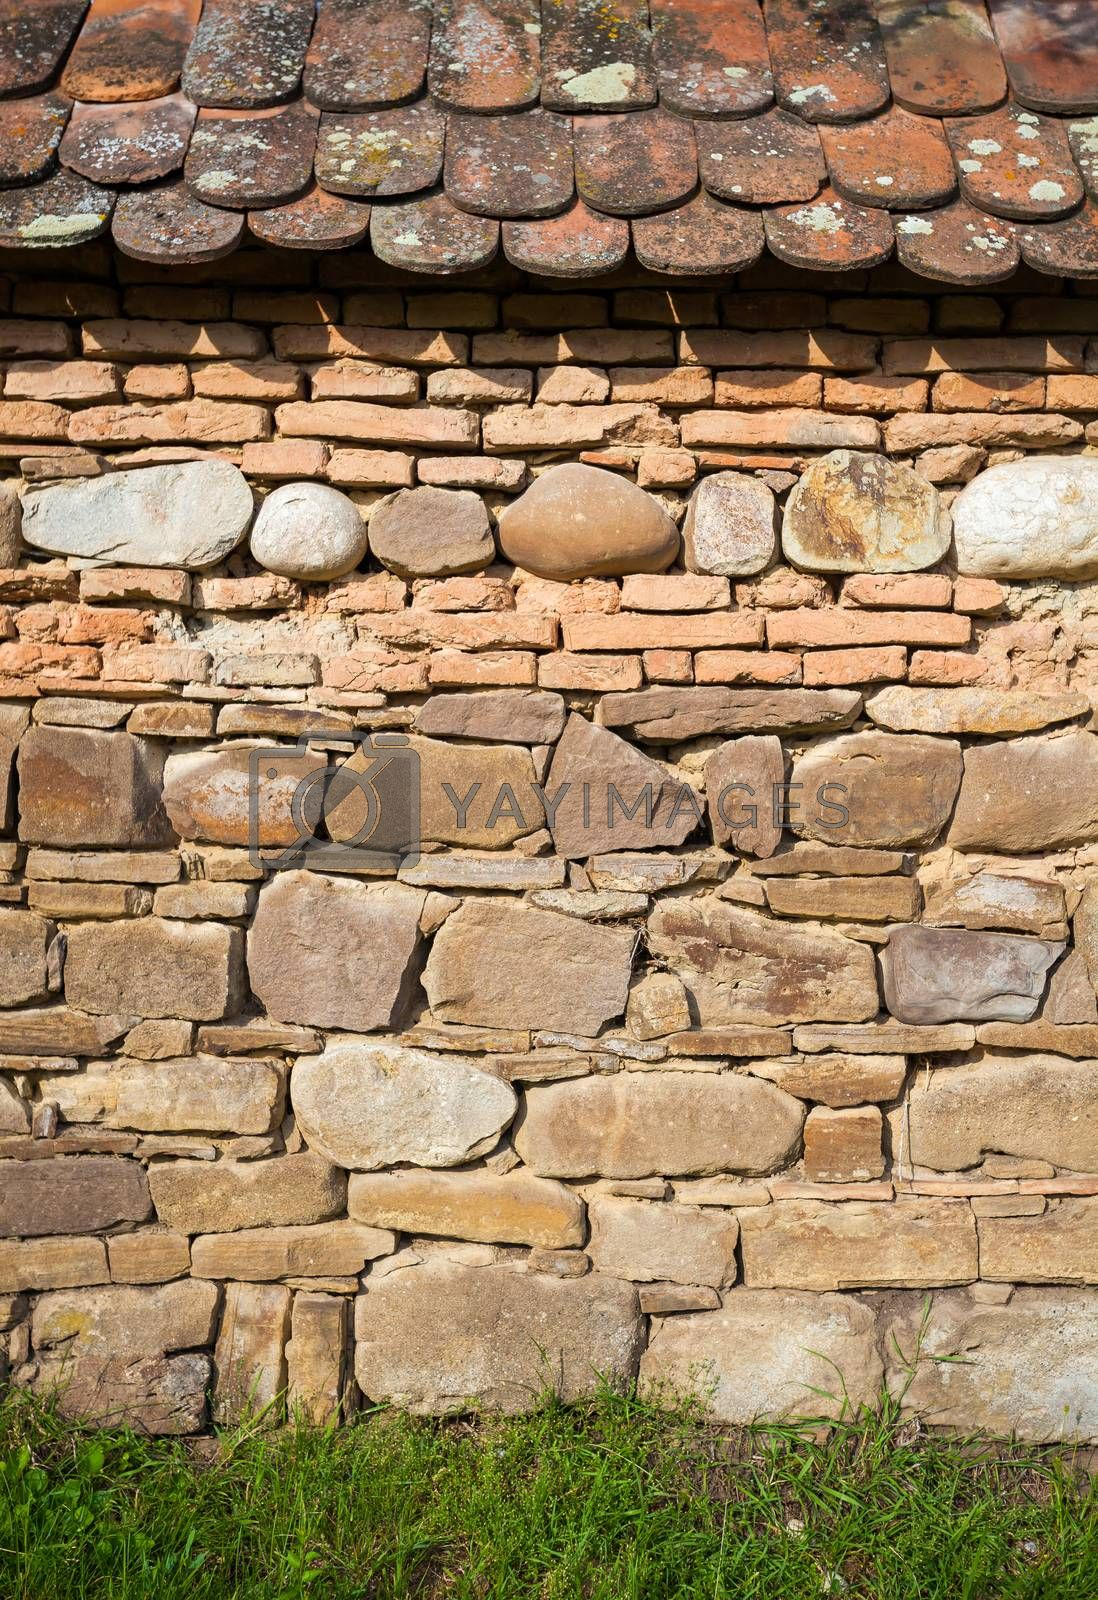 Rustic wall with layers of different comstruction materials - sandstones, bricks, river stones and roof tiles